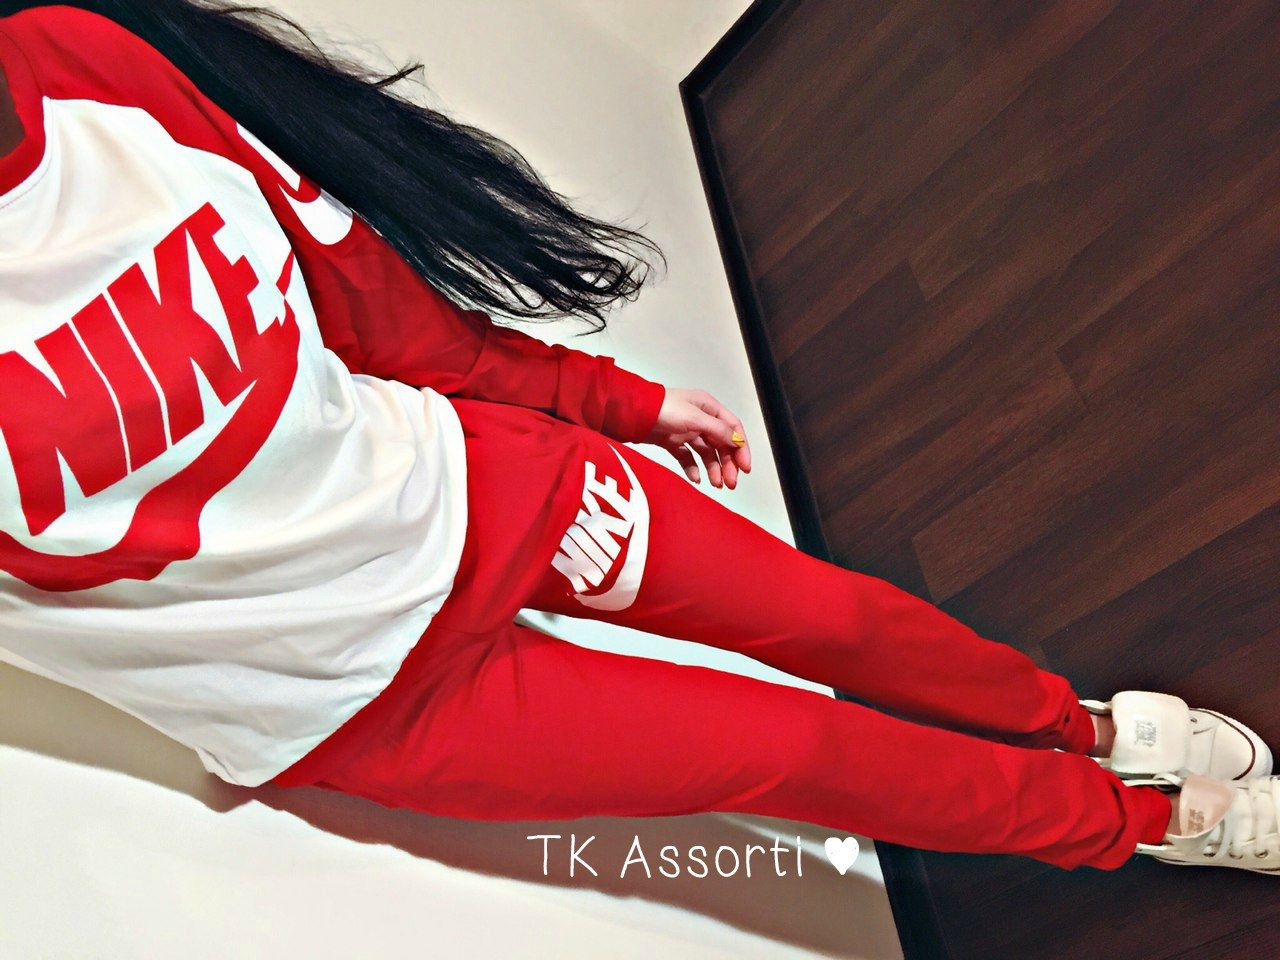 Article Cdf00061 Red White Tracksuit Sweatsuit Stylish Womens Red And White Sweatsuit Cute Lazy Day Outfits Fashion Red Nike